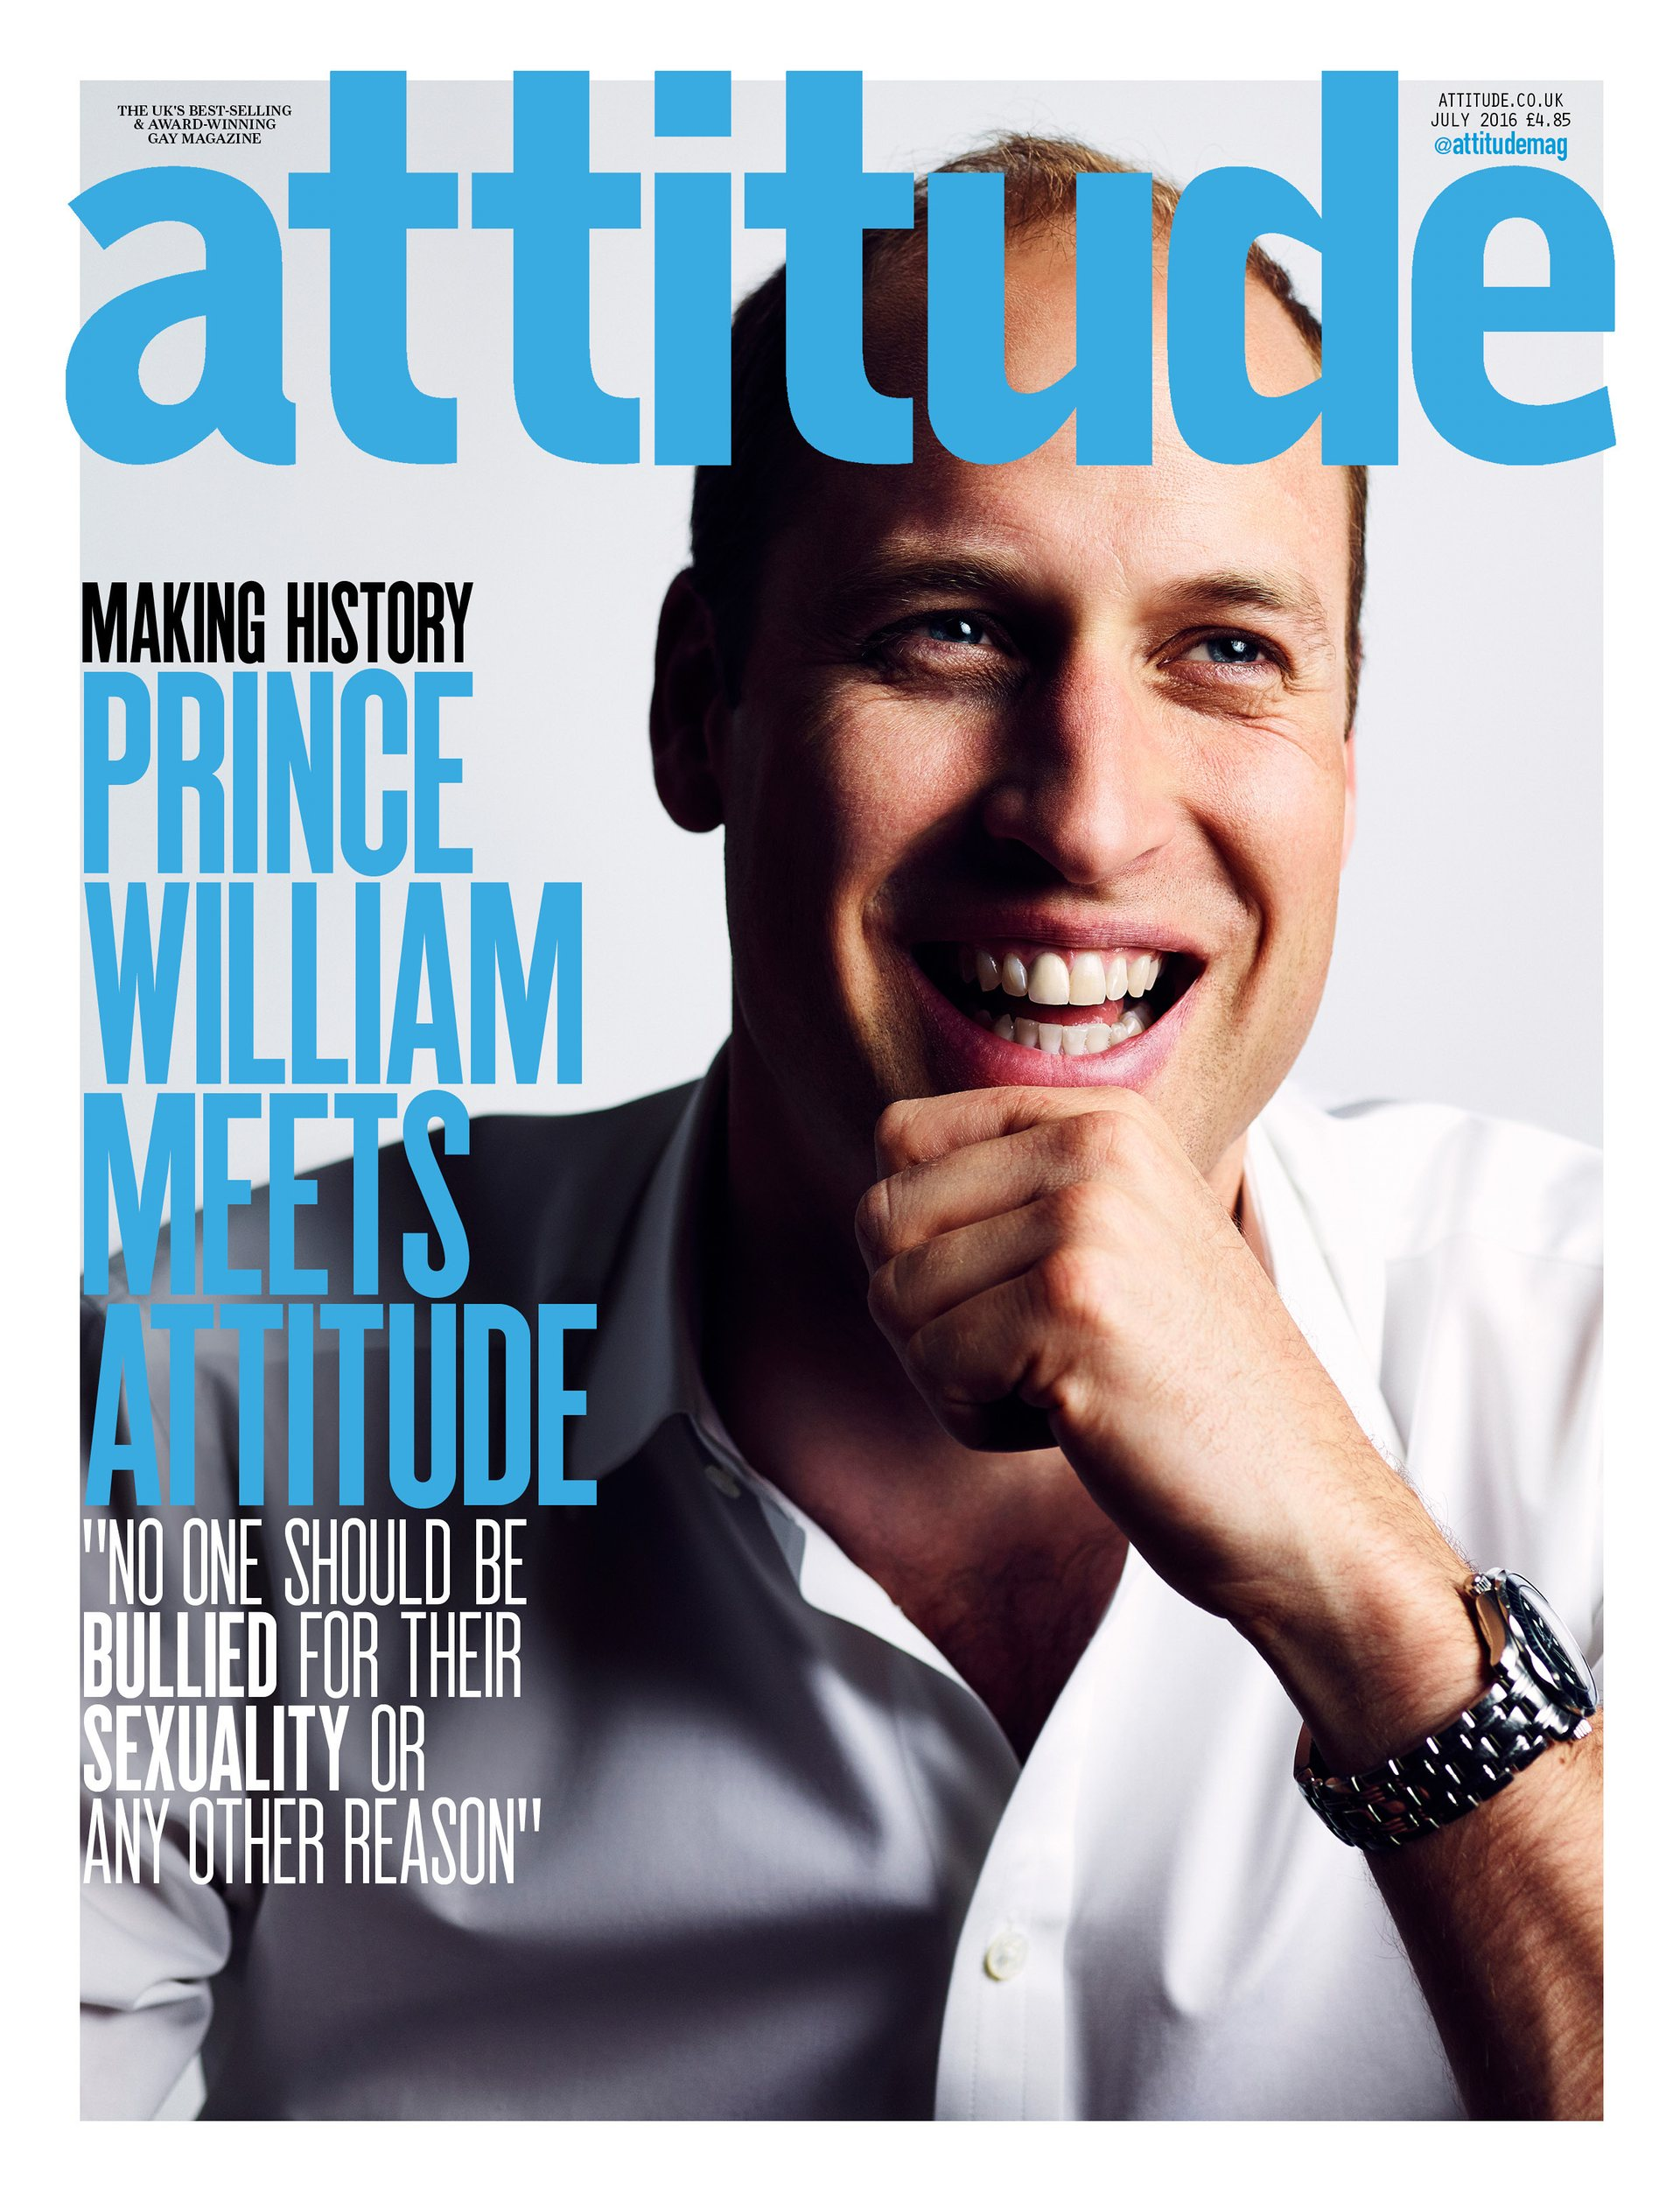 Prince William appears on the cover of the July 2016 issue of Attitude magazine.